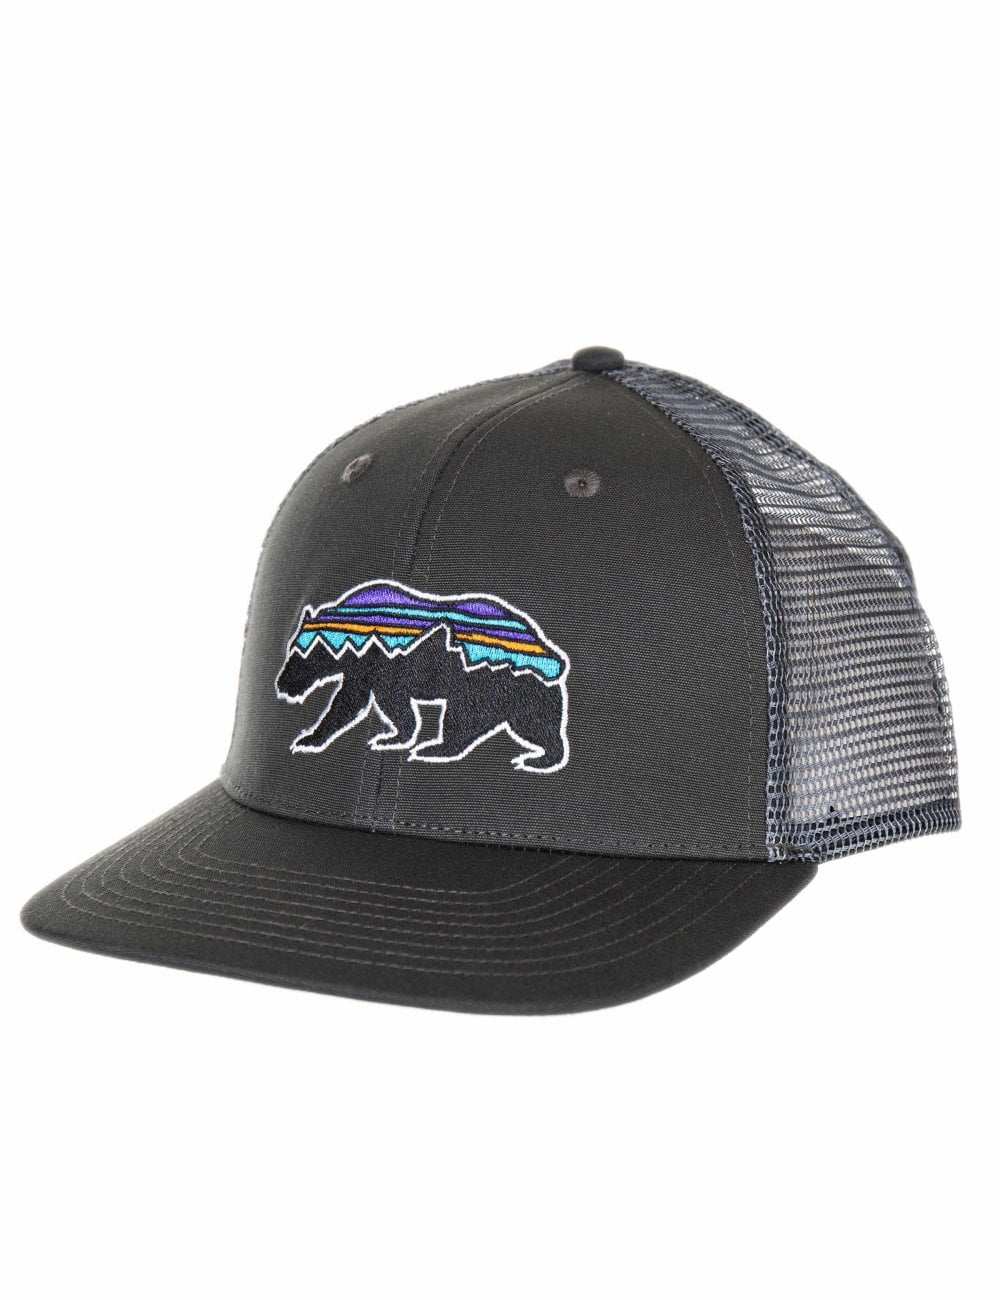 Patagonia Fitz Roy Bear Trucker Hat - Forge Grey - Accessories from ... 82a3ffe32b6a